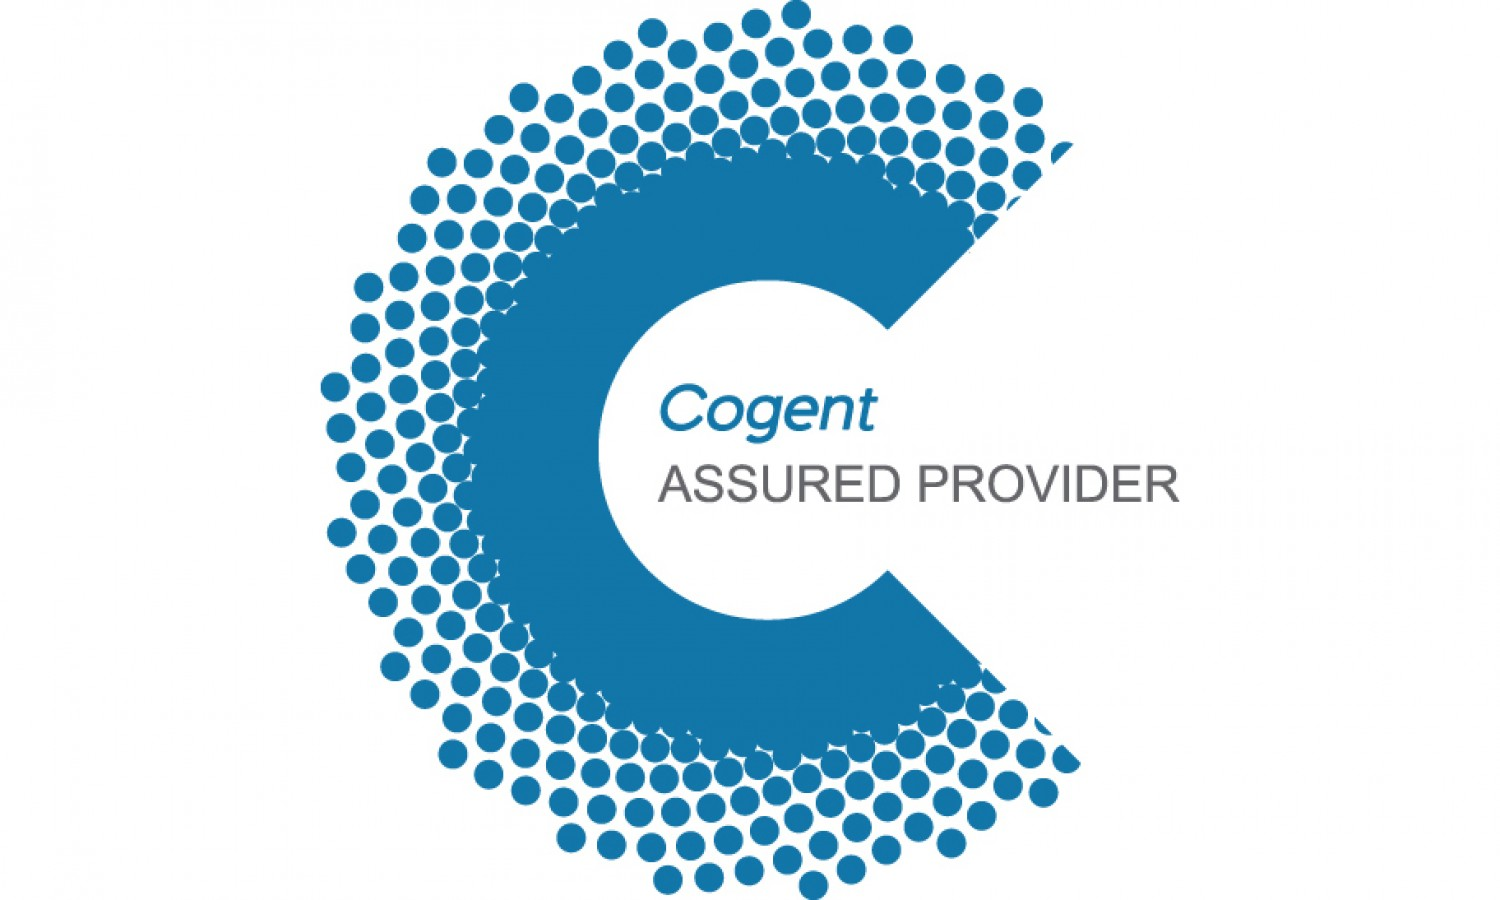 Cogent-Assured-Provider-logo